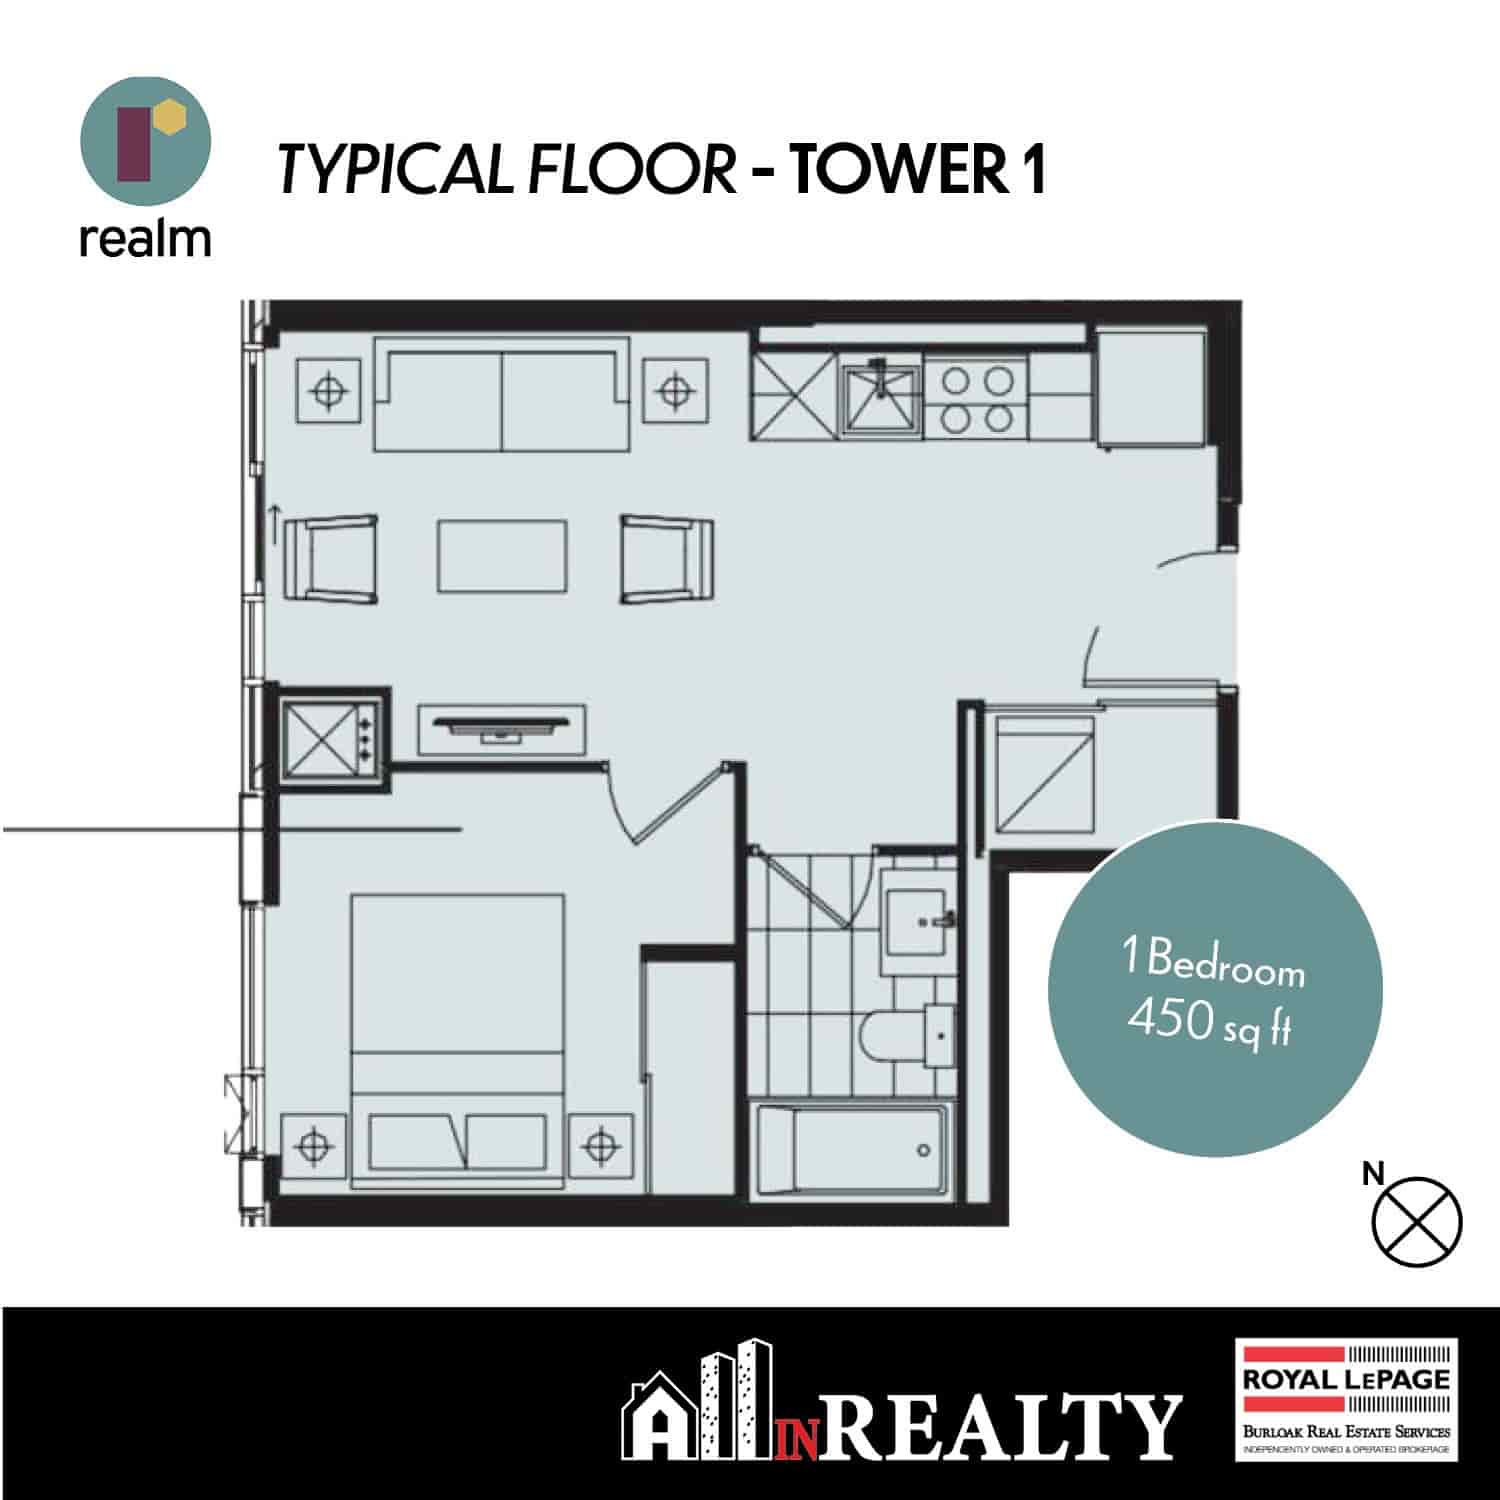 Realm 1 Bed 450 sf